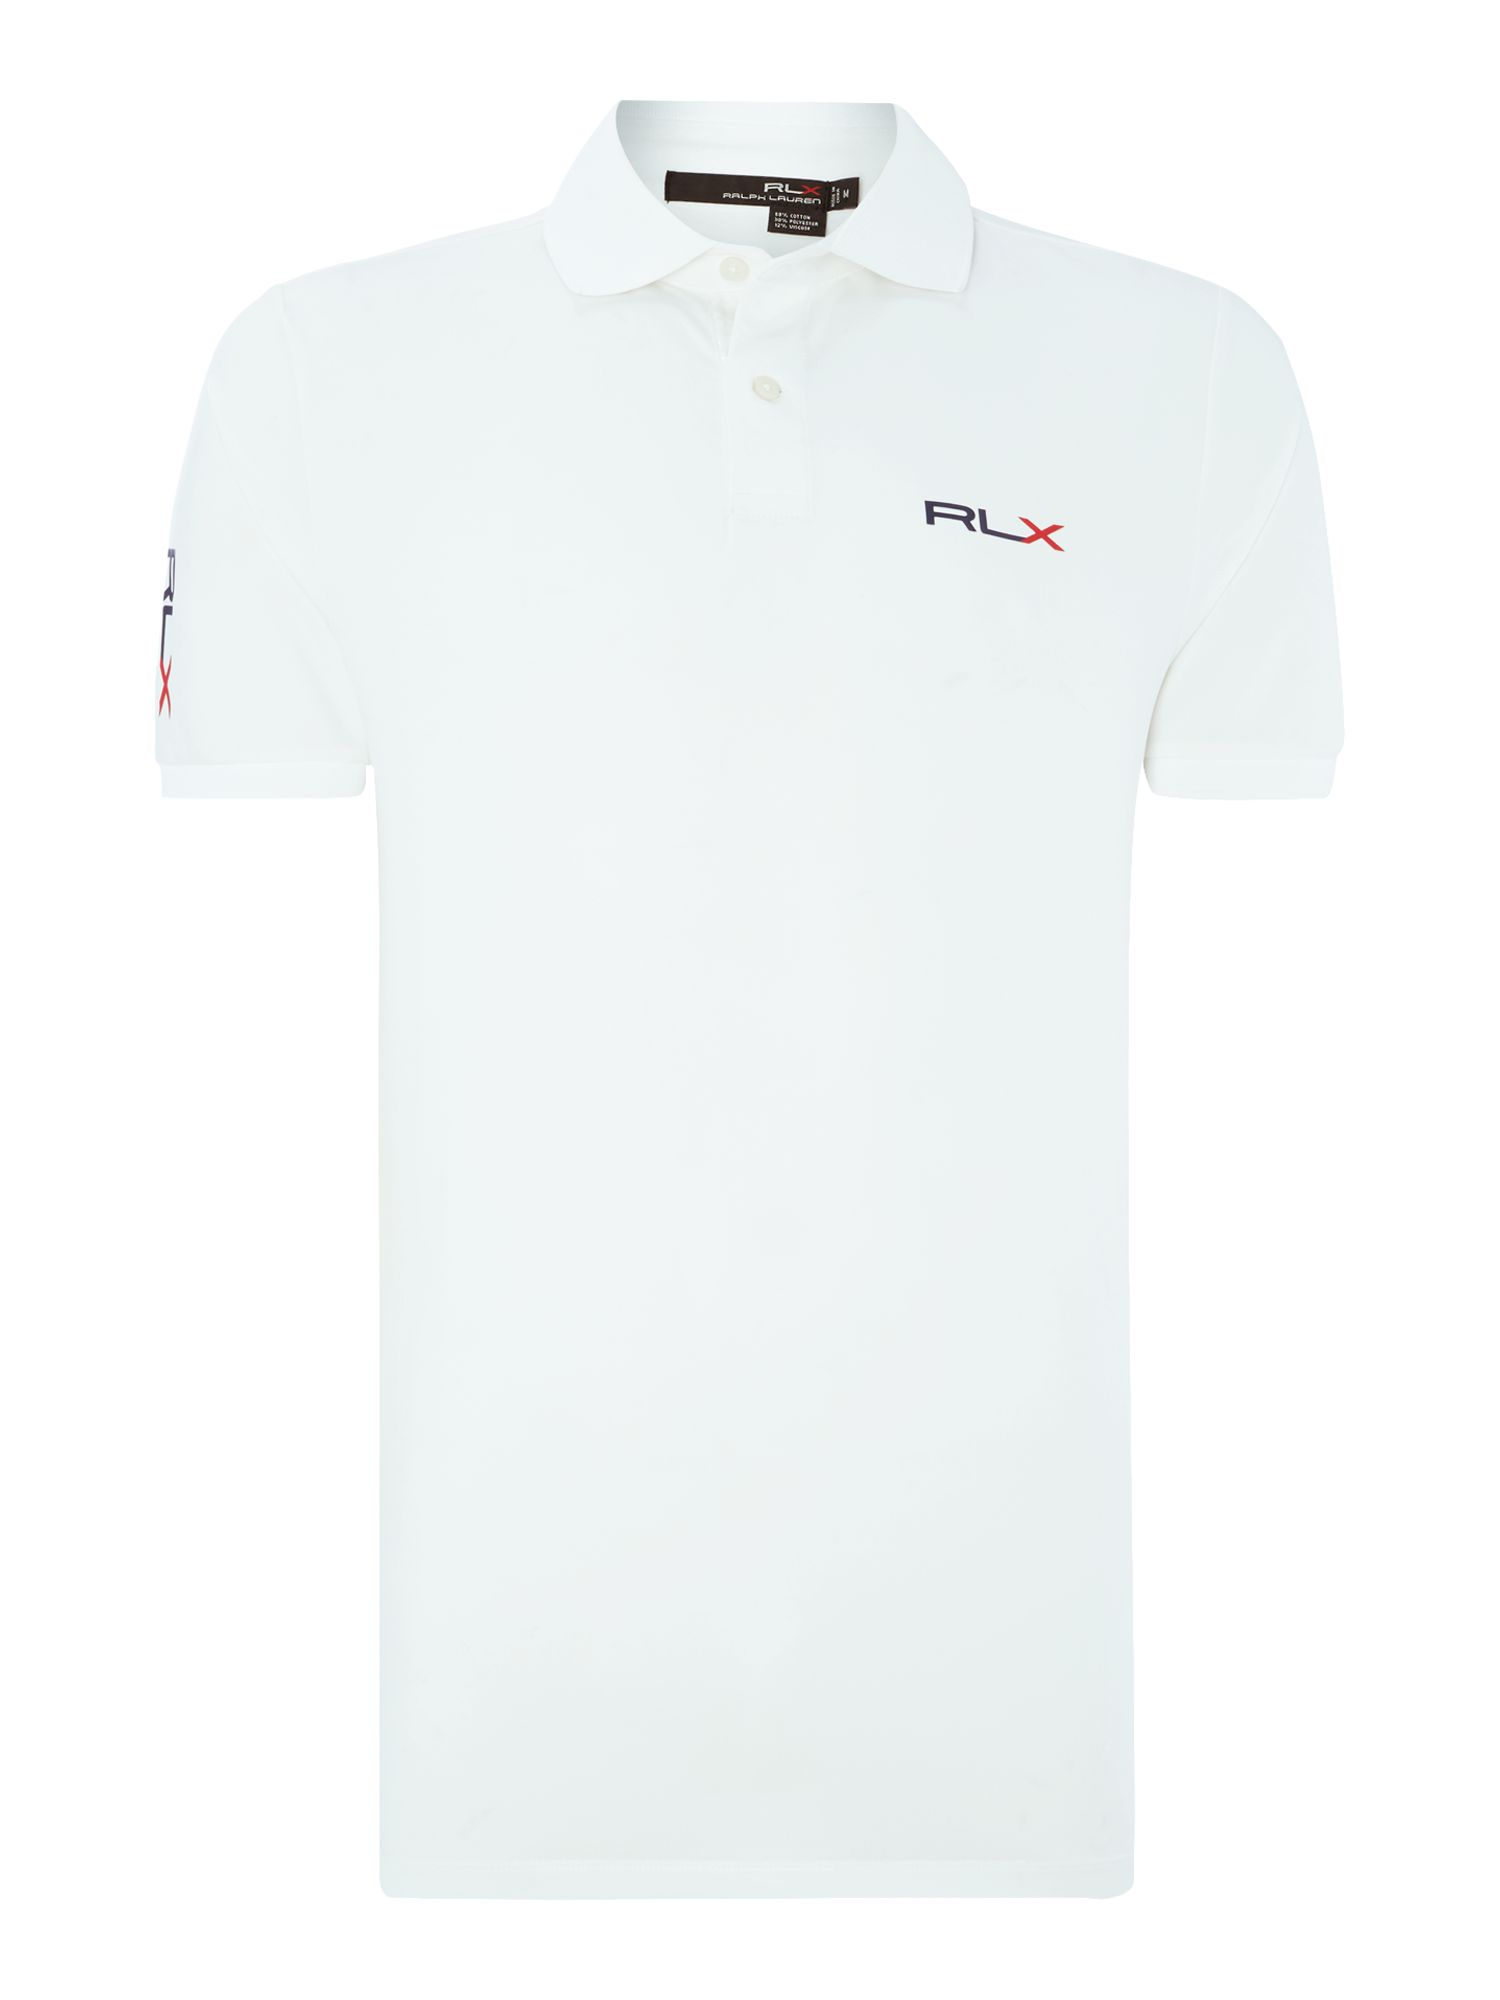 Men's RLX Ralph Lauren Golf Pro Fit Polo Shirt